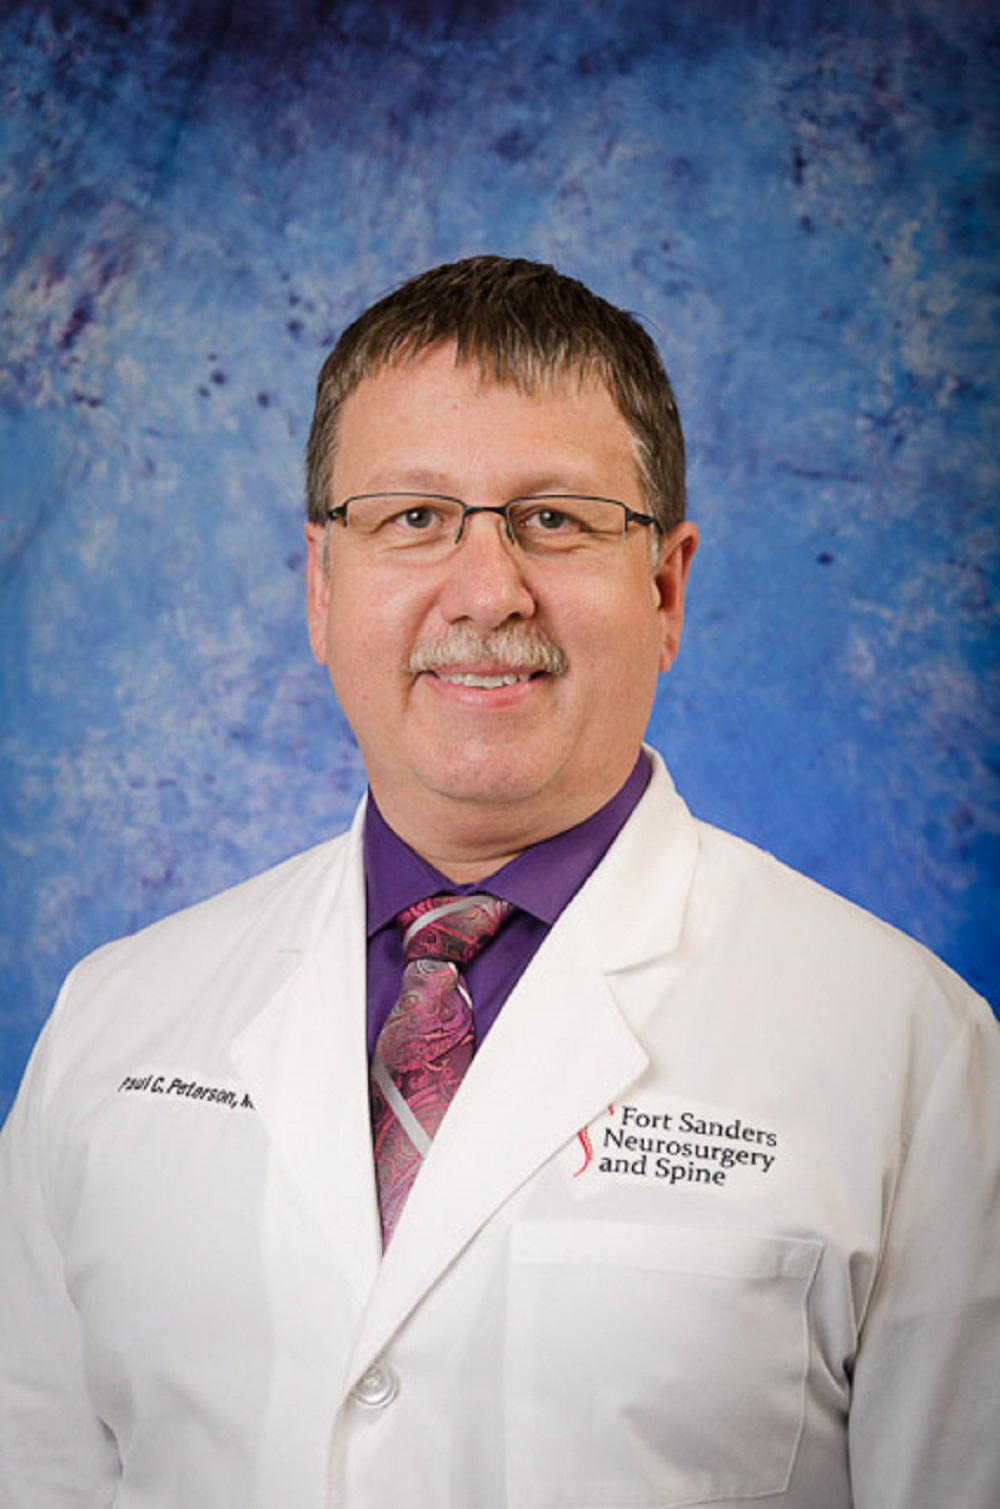 Paul C. Peterson, MD